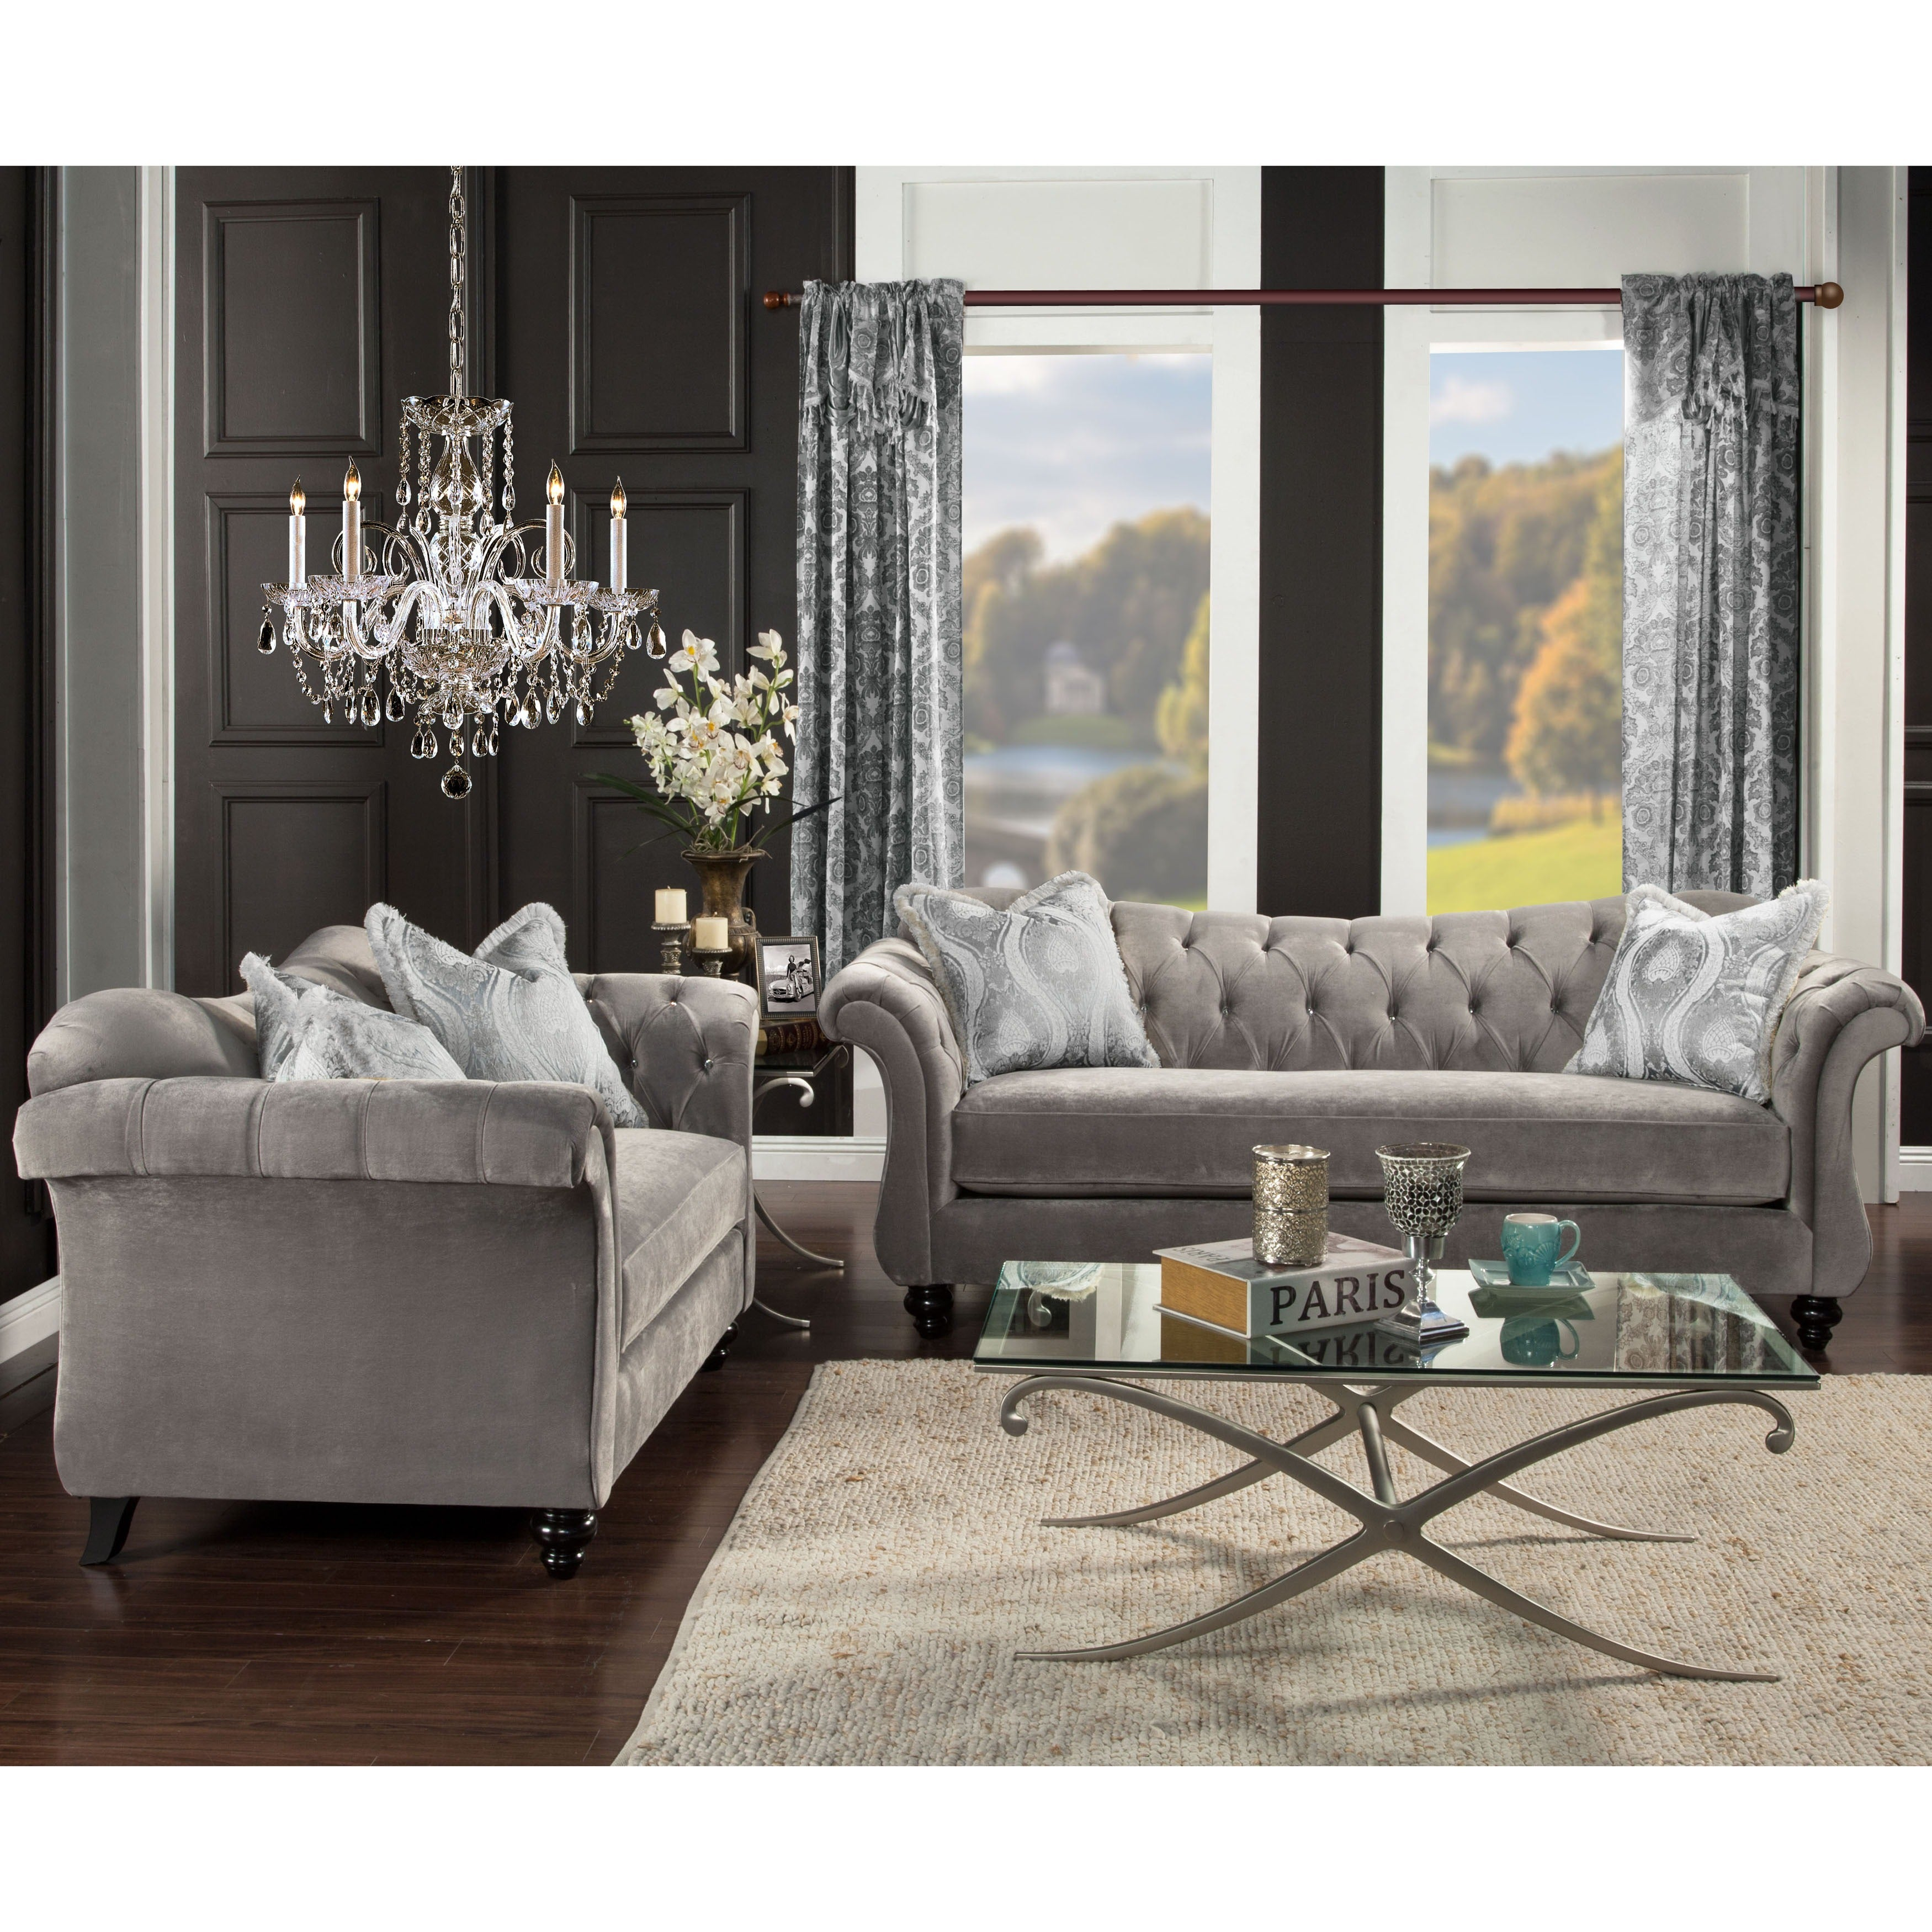 xxx and loveseat room furniture woven sofa couches market loveseats category couch sofas living do gray dolphin apel world